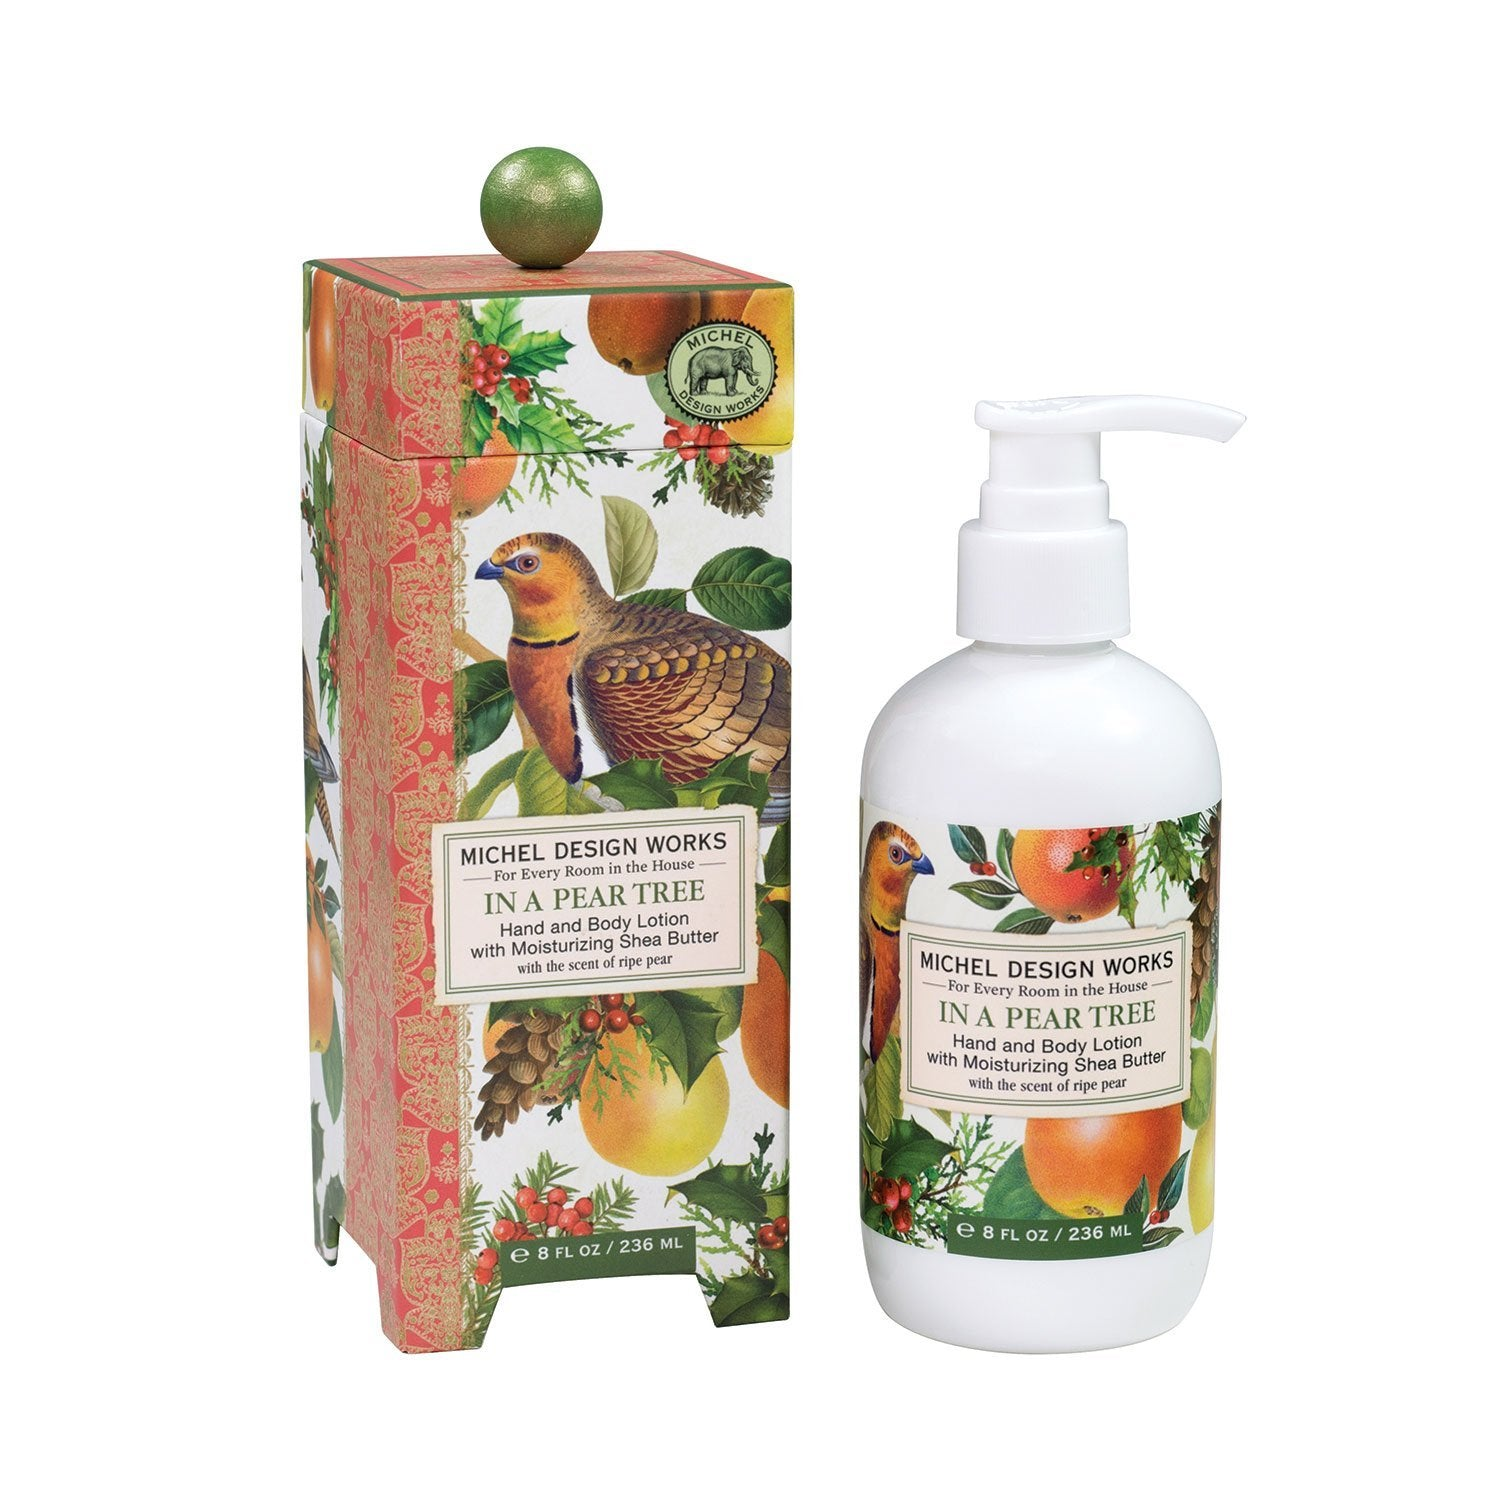 In A Pear Tree - Hand and Body Lotion With Shea Butter